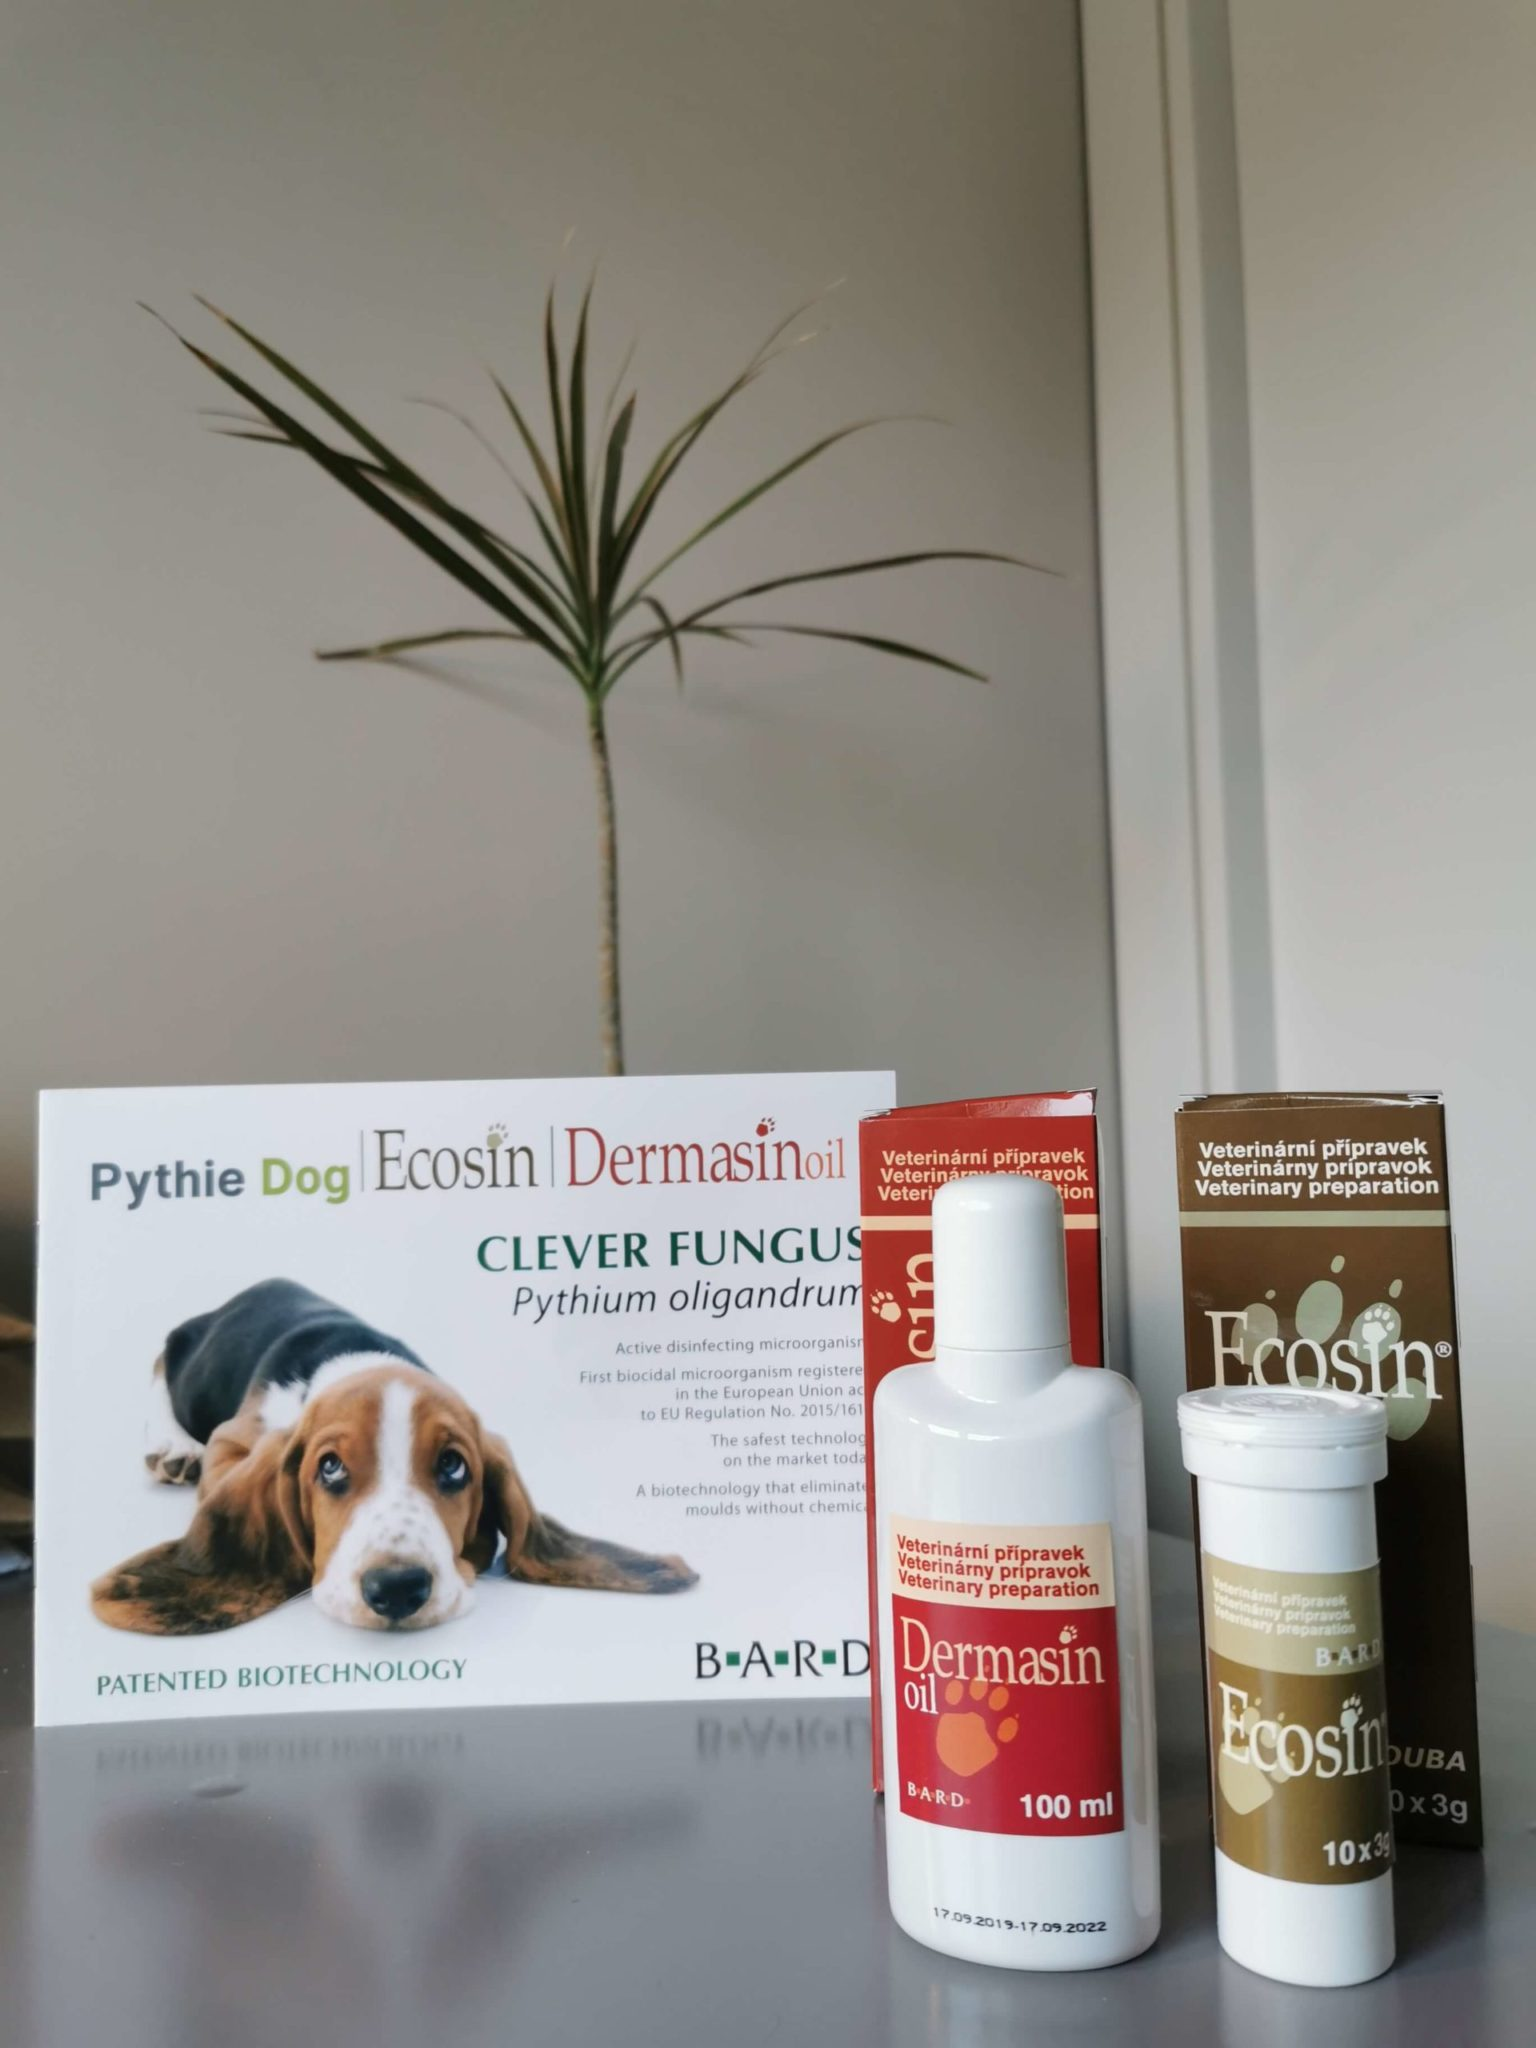 New natural solution for stubborn yeast issues in dogs…